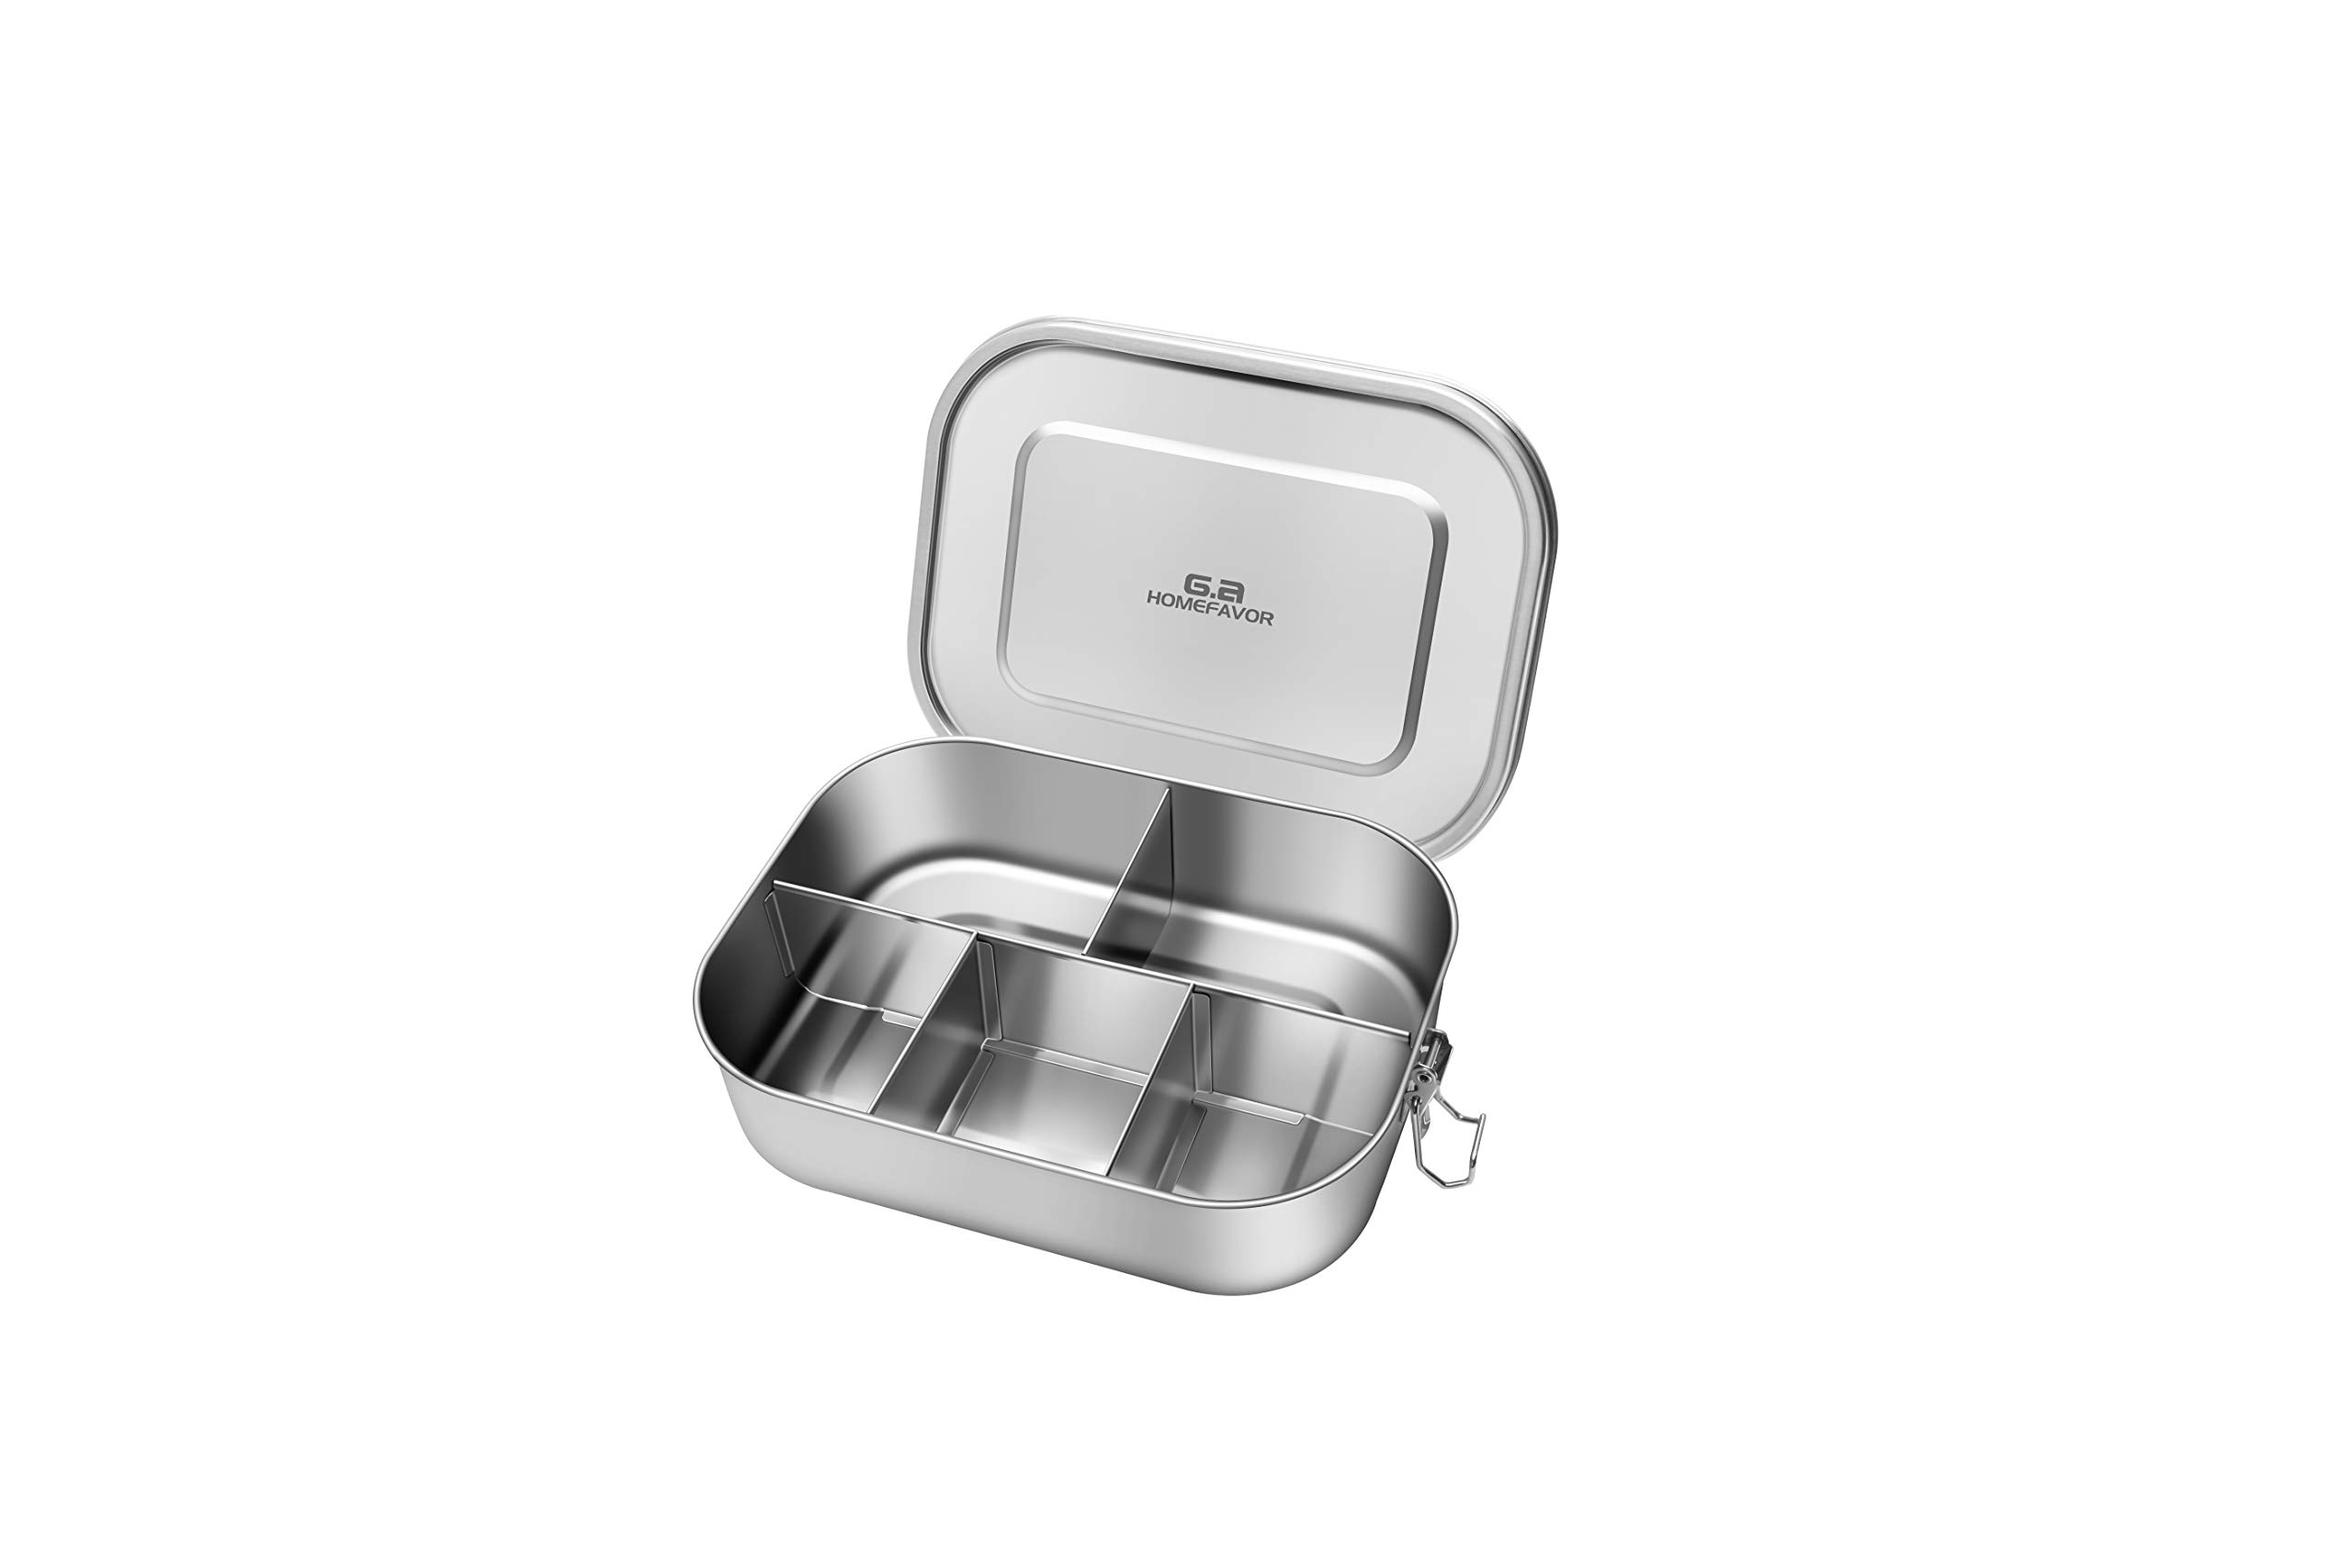 G.a HOMEFAVOR Leak Proof Stainless Steel Bento Box,1400ml Lunch Containers with 5 Compartment Great for School, Office Lunch, Travel, Picnic, Eco-Friendly - Dishwasher Safe